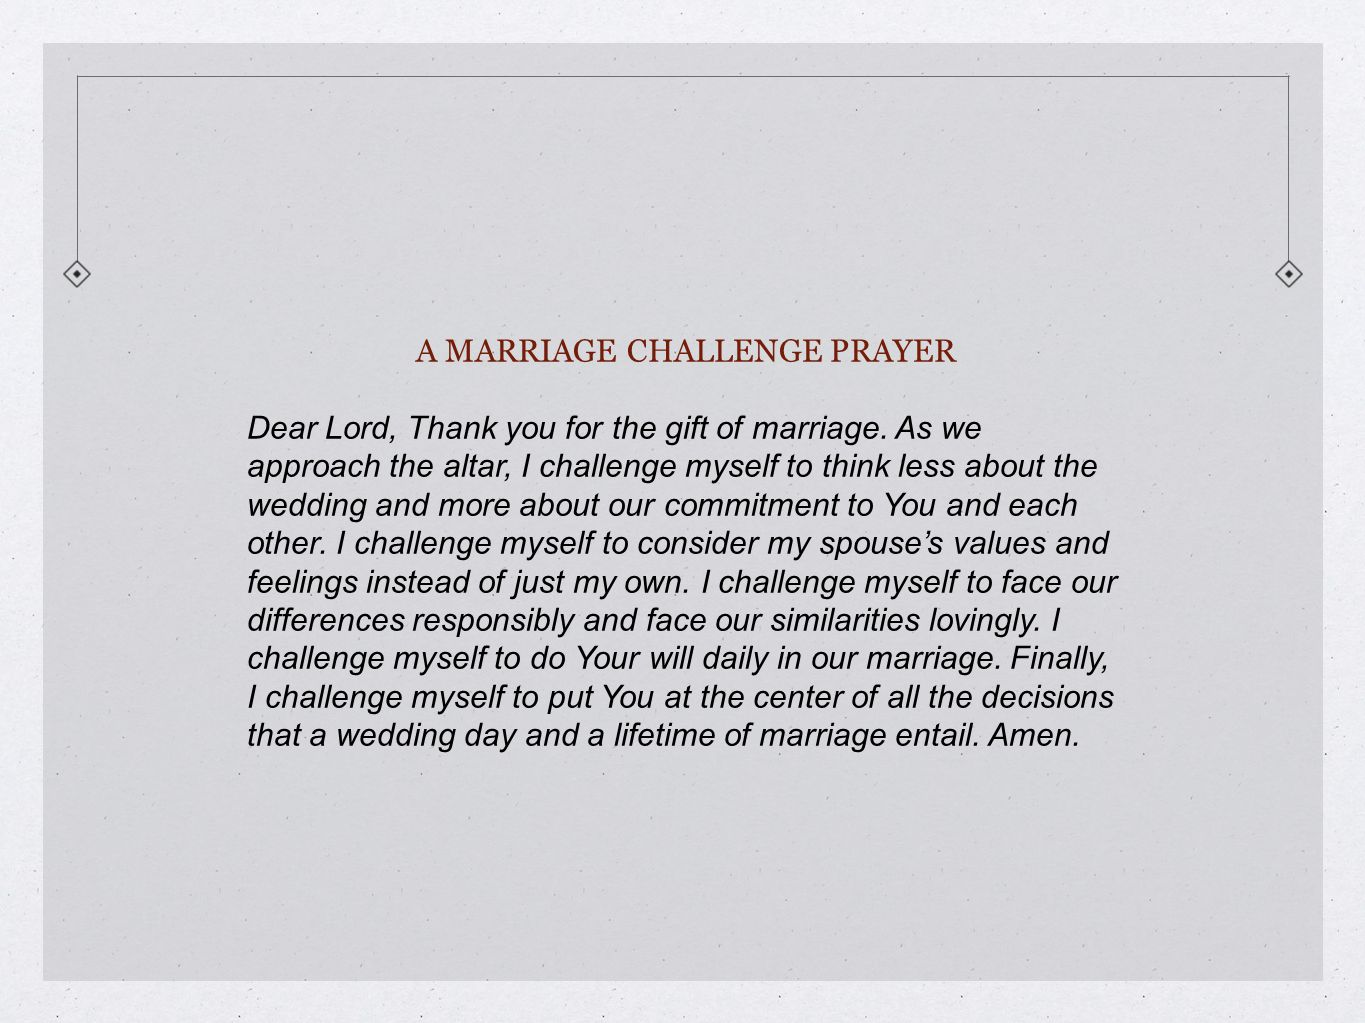 A MARRIAGE CHALLENGE PRAYER Dear Lord, Thank you for the gift of marriage. As we approach the altar, I challenge myself to think less about the weddin